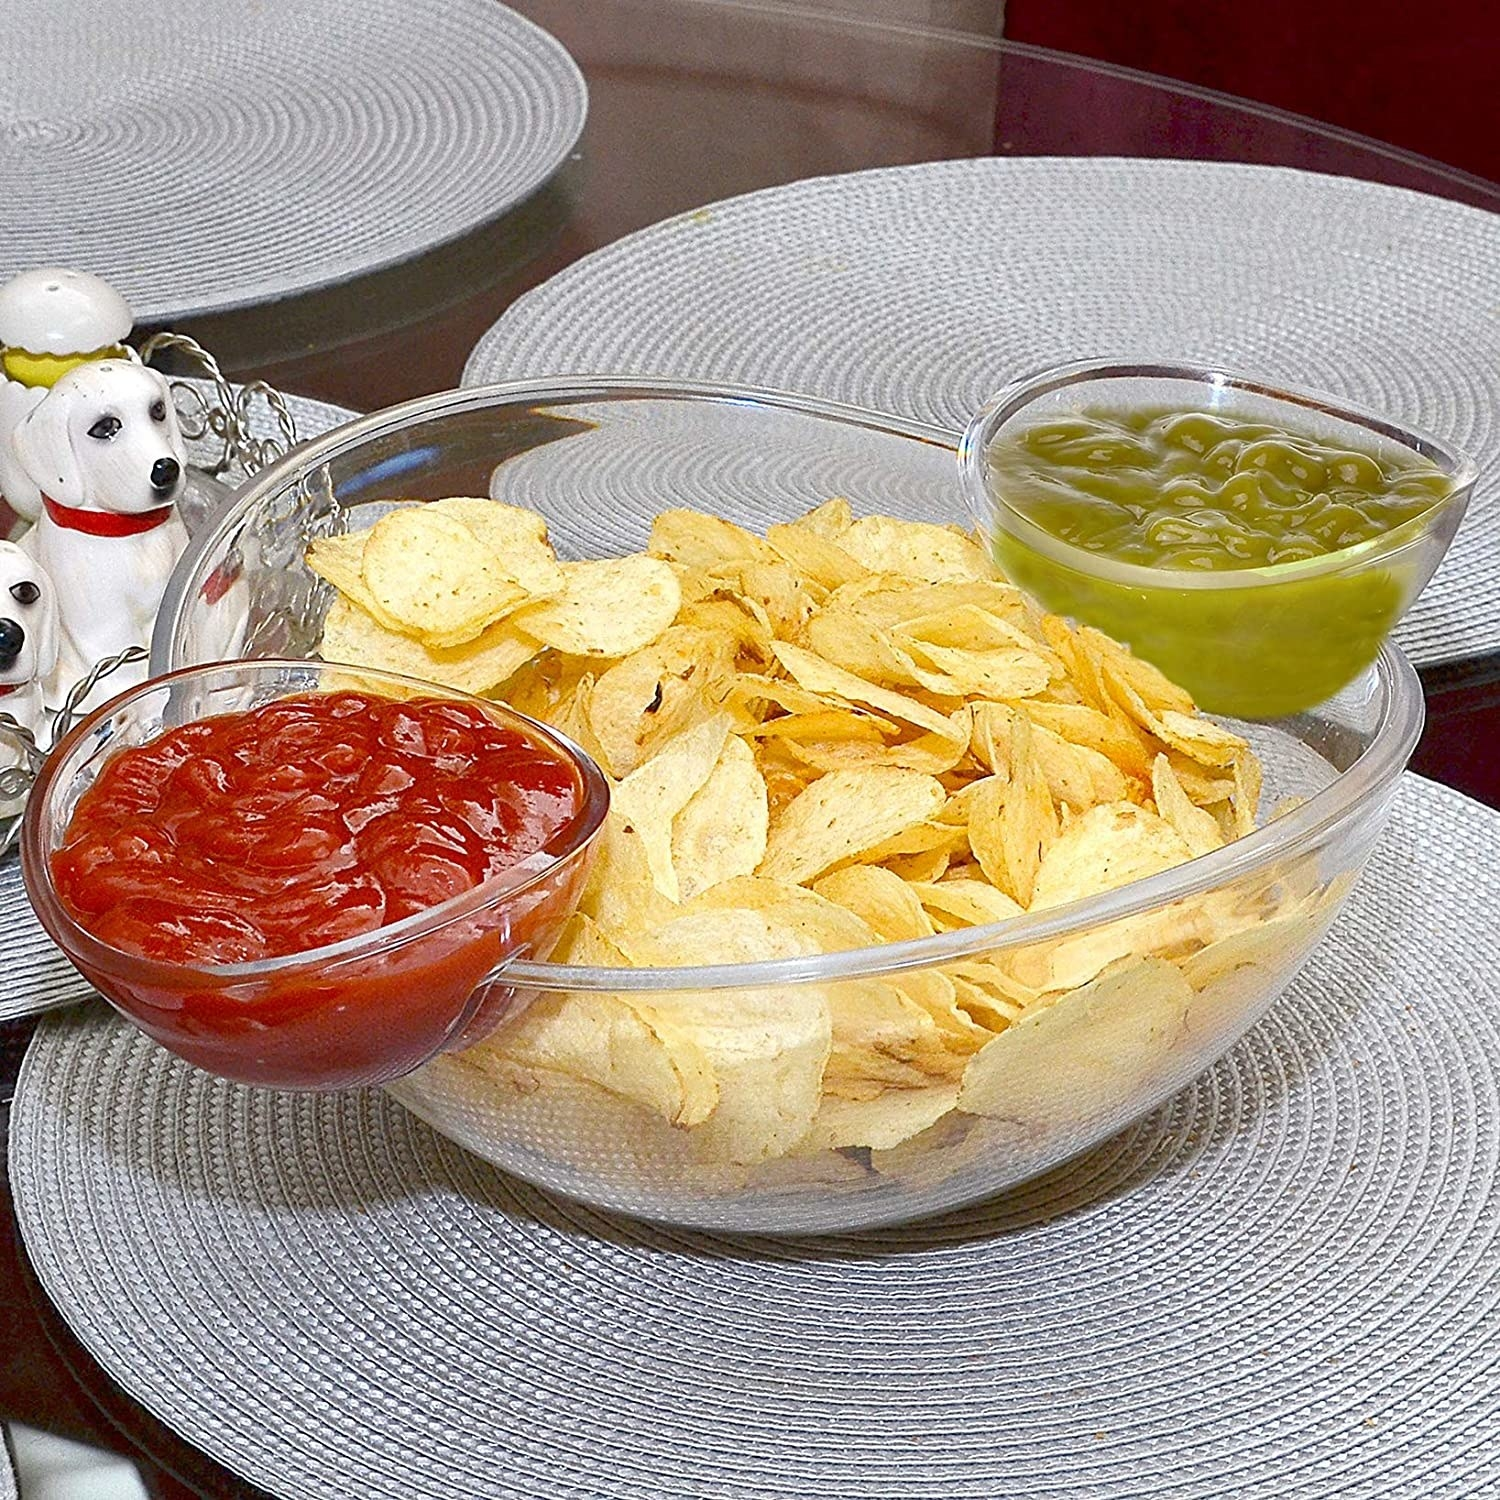 chip bowl filled with potato chips and two condiment holders filled with a ketchup and a green dip